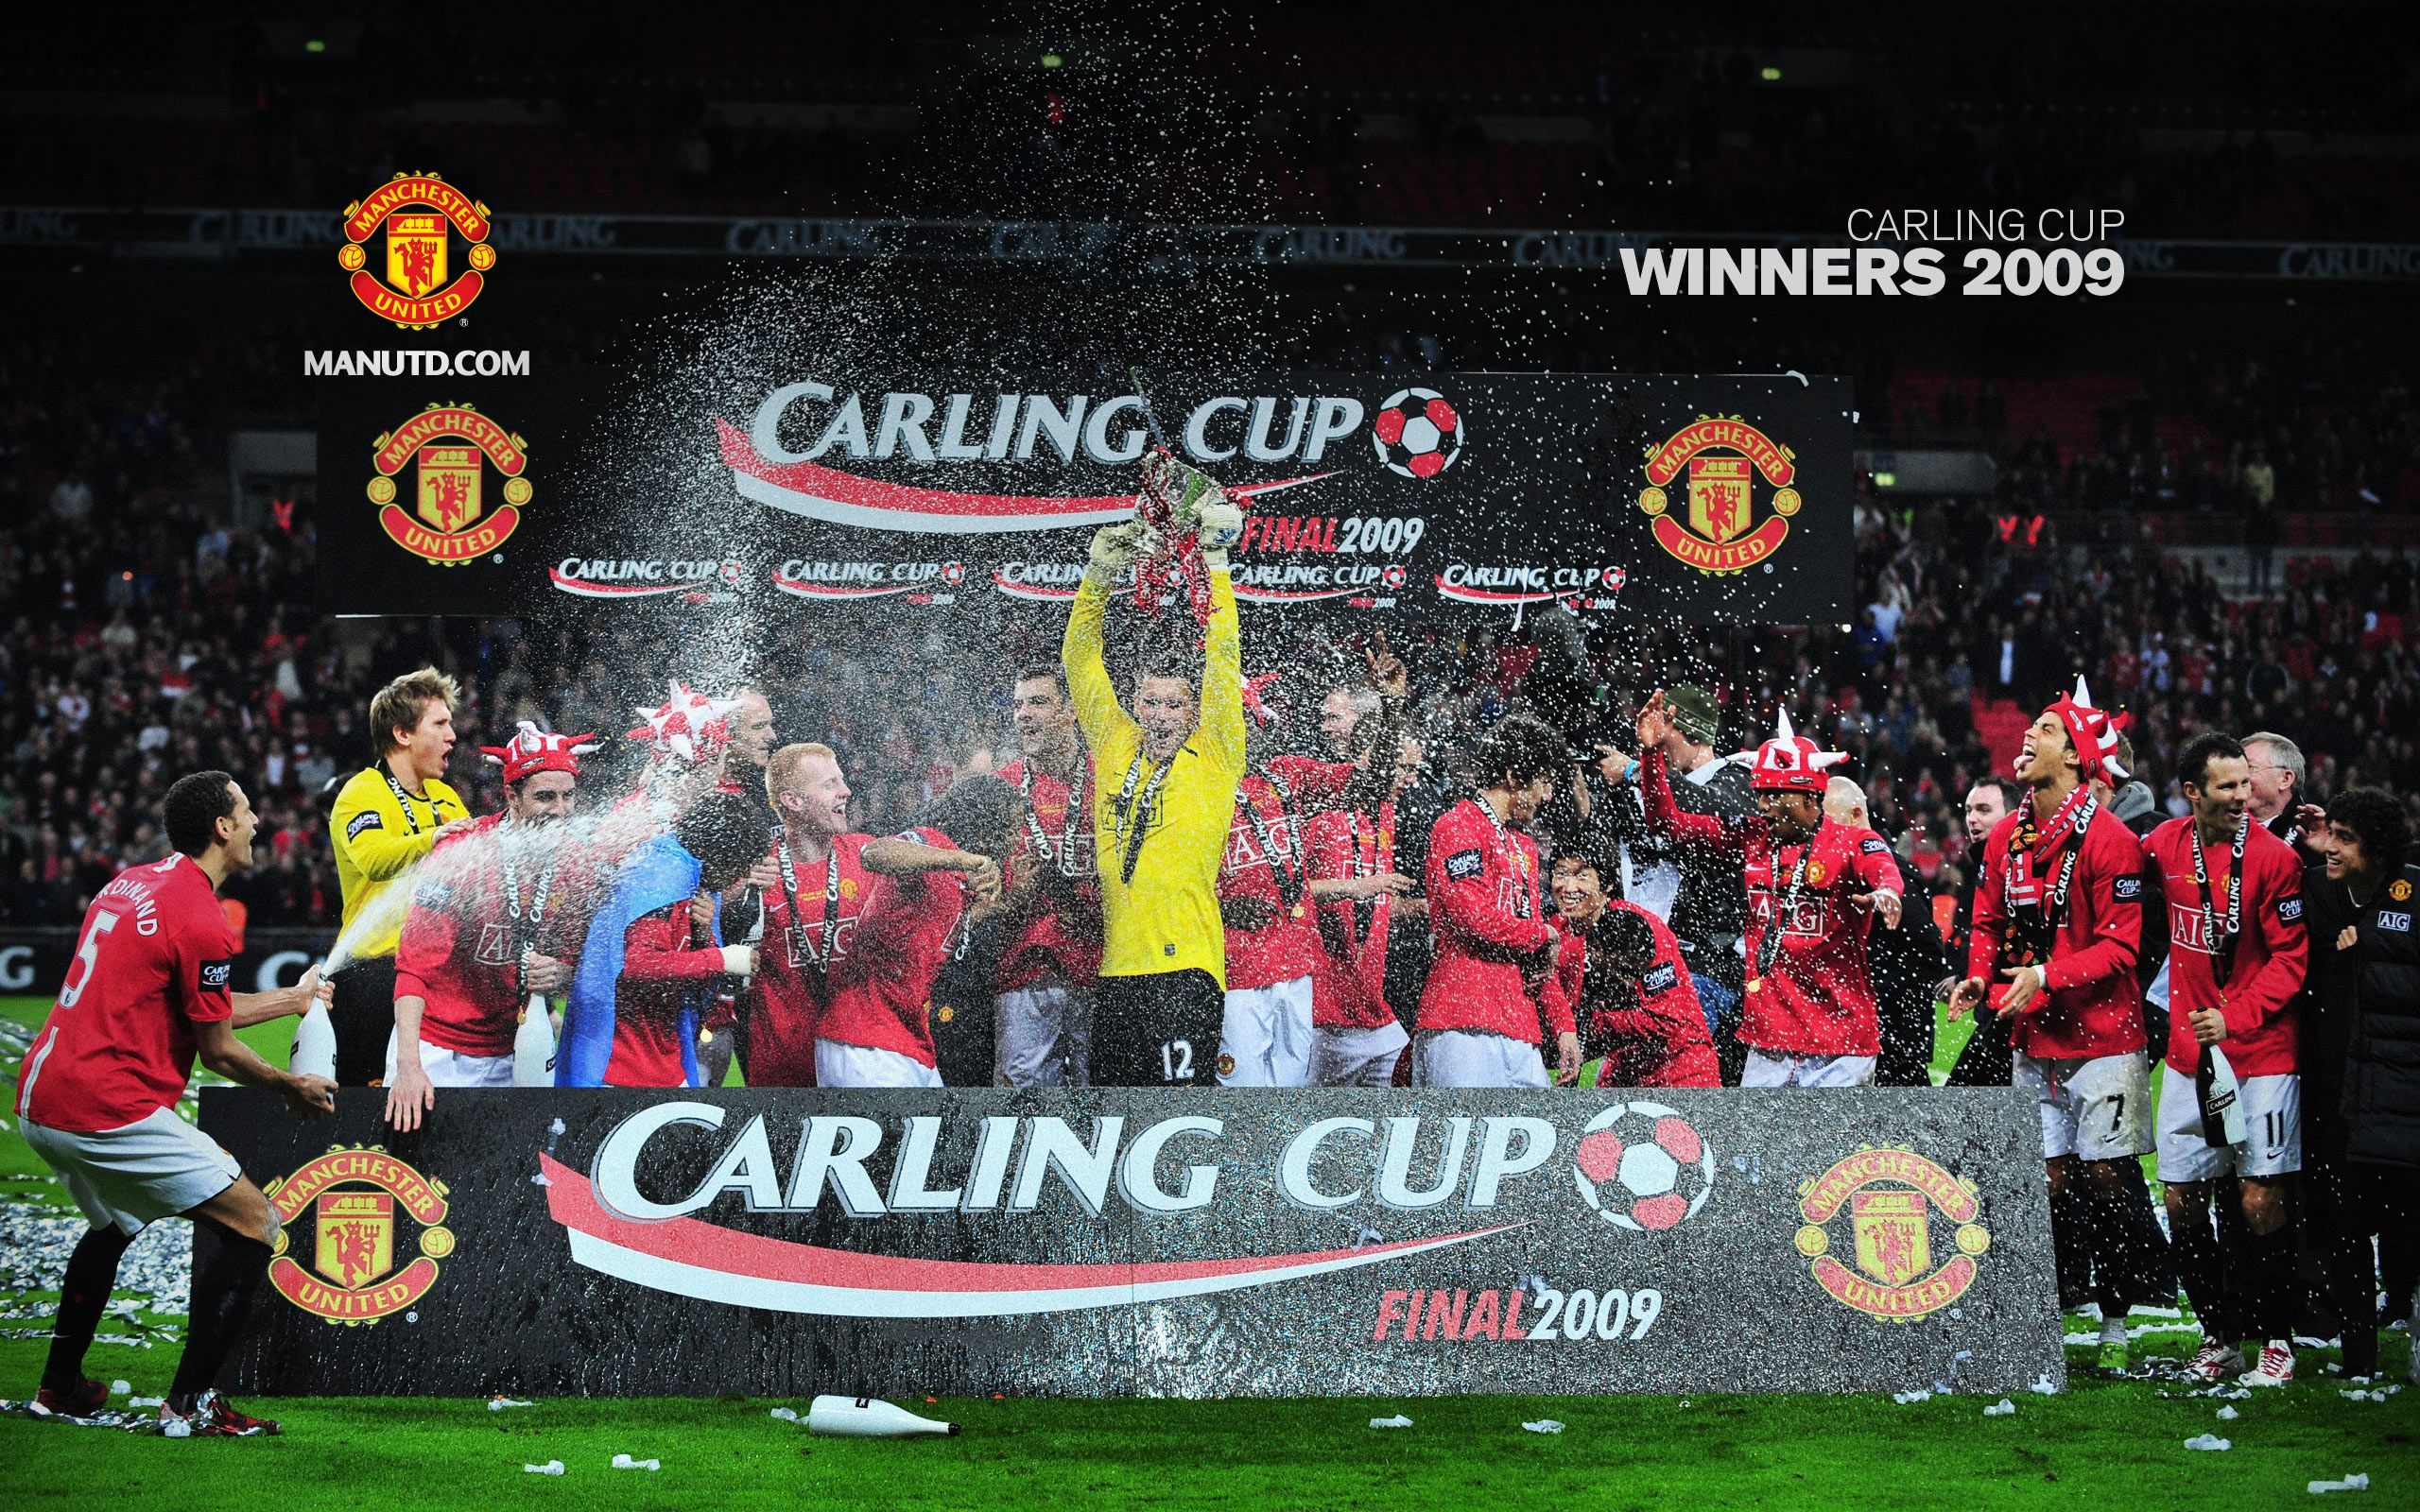 Carling Cup 2009 Manchester United Manchester United Fans Official Manchester United Website